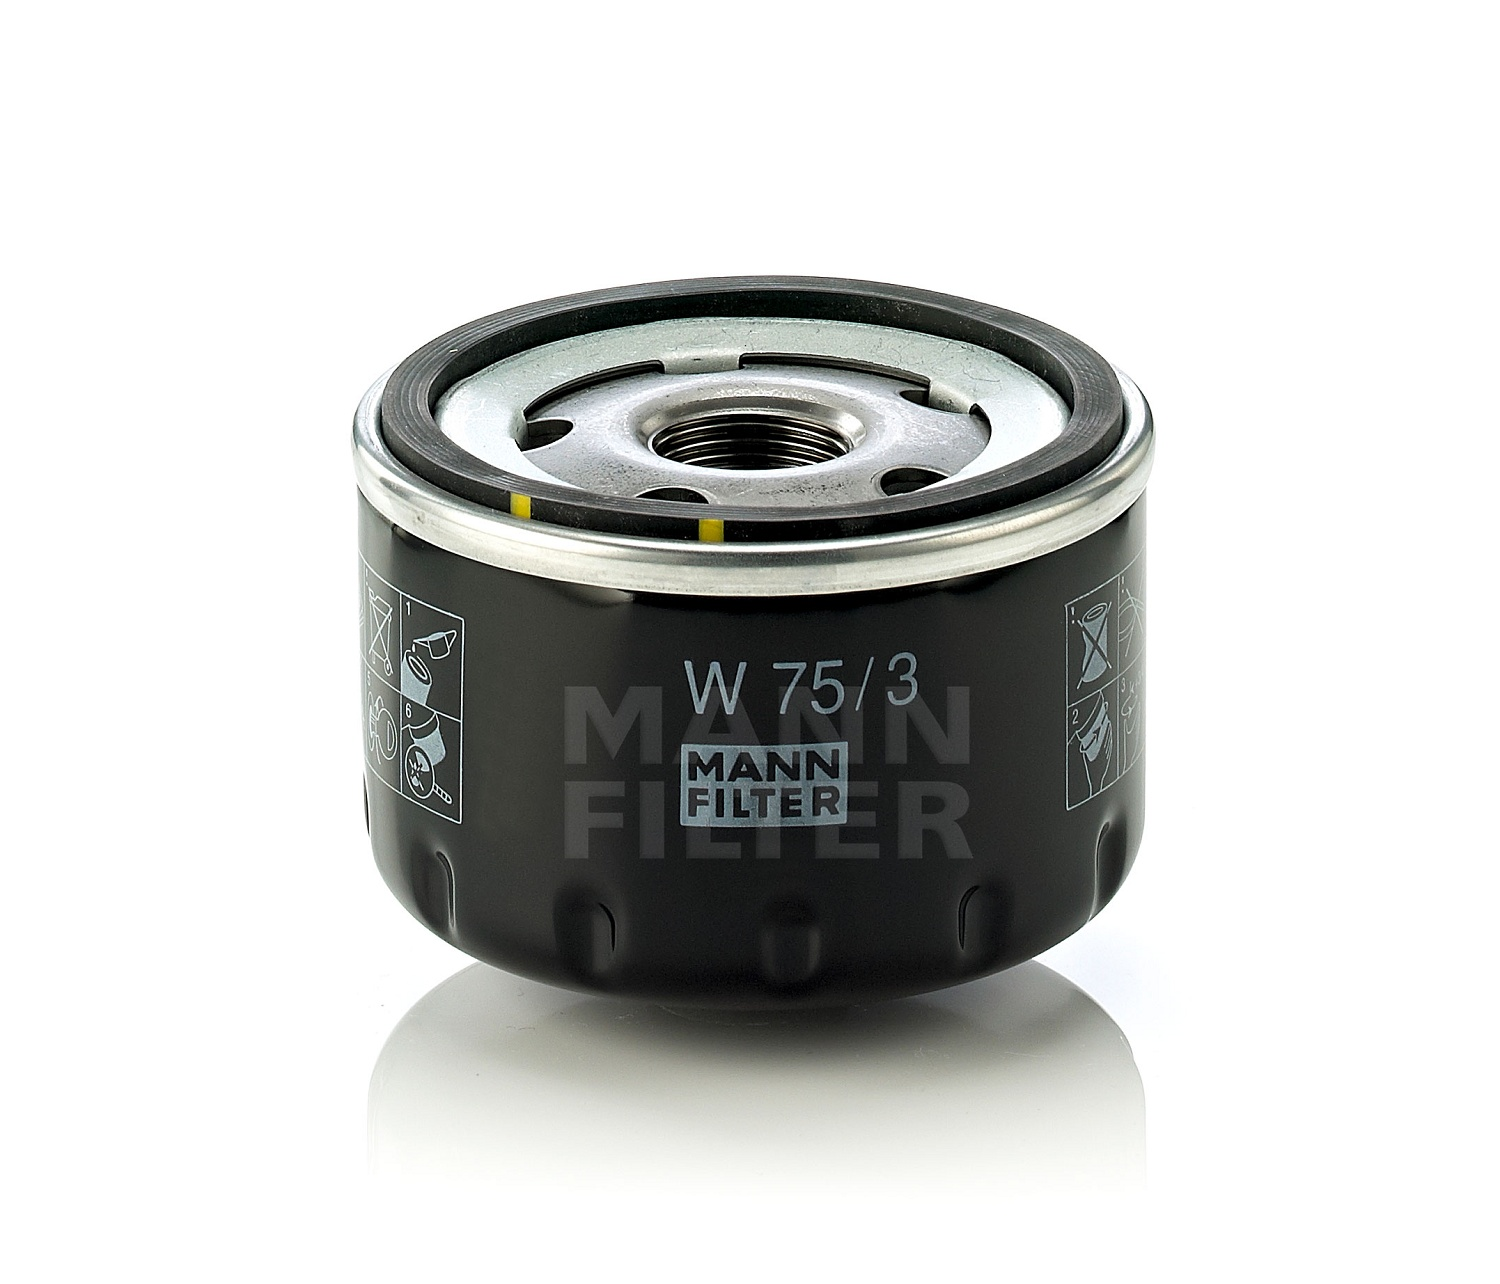 mann oil filter w75 3 fits renault clio 1 4 16v bb 1 6 16v bb 2 0 sport 1 ebay. Black Bedroom Furniture Sets. Home Design Ideas